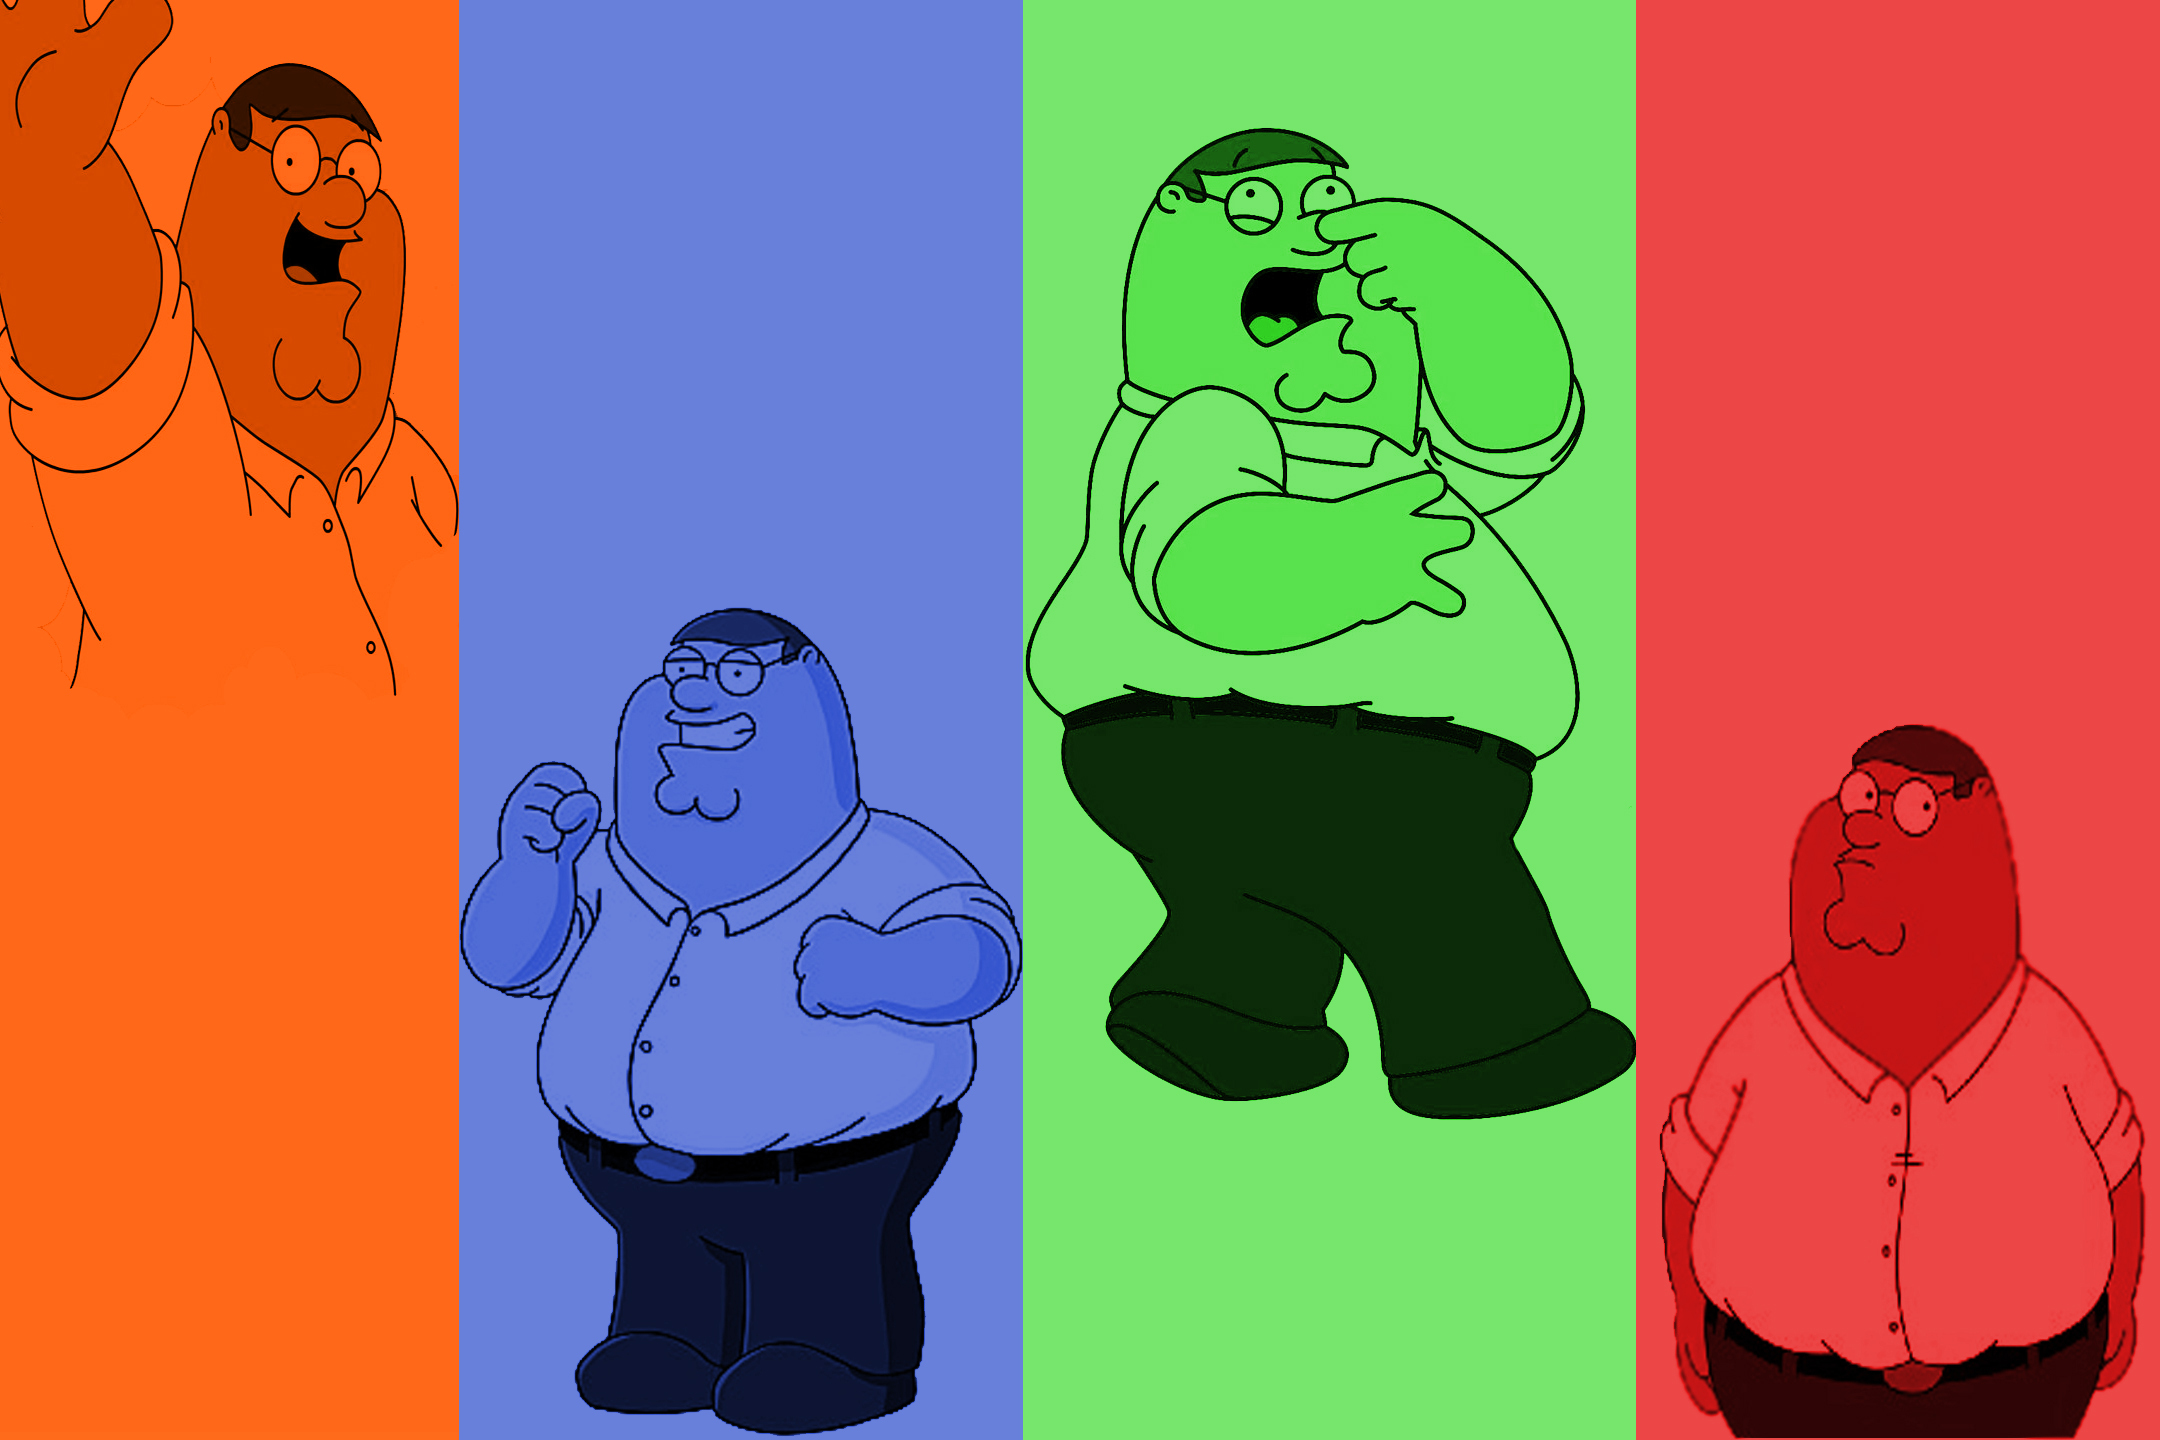 family guy wallpapers for computer   weddingdressincom 2160x1440